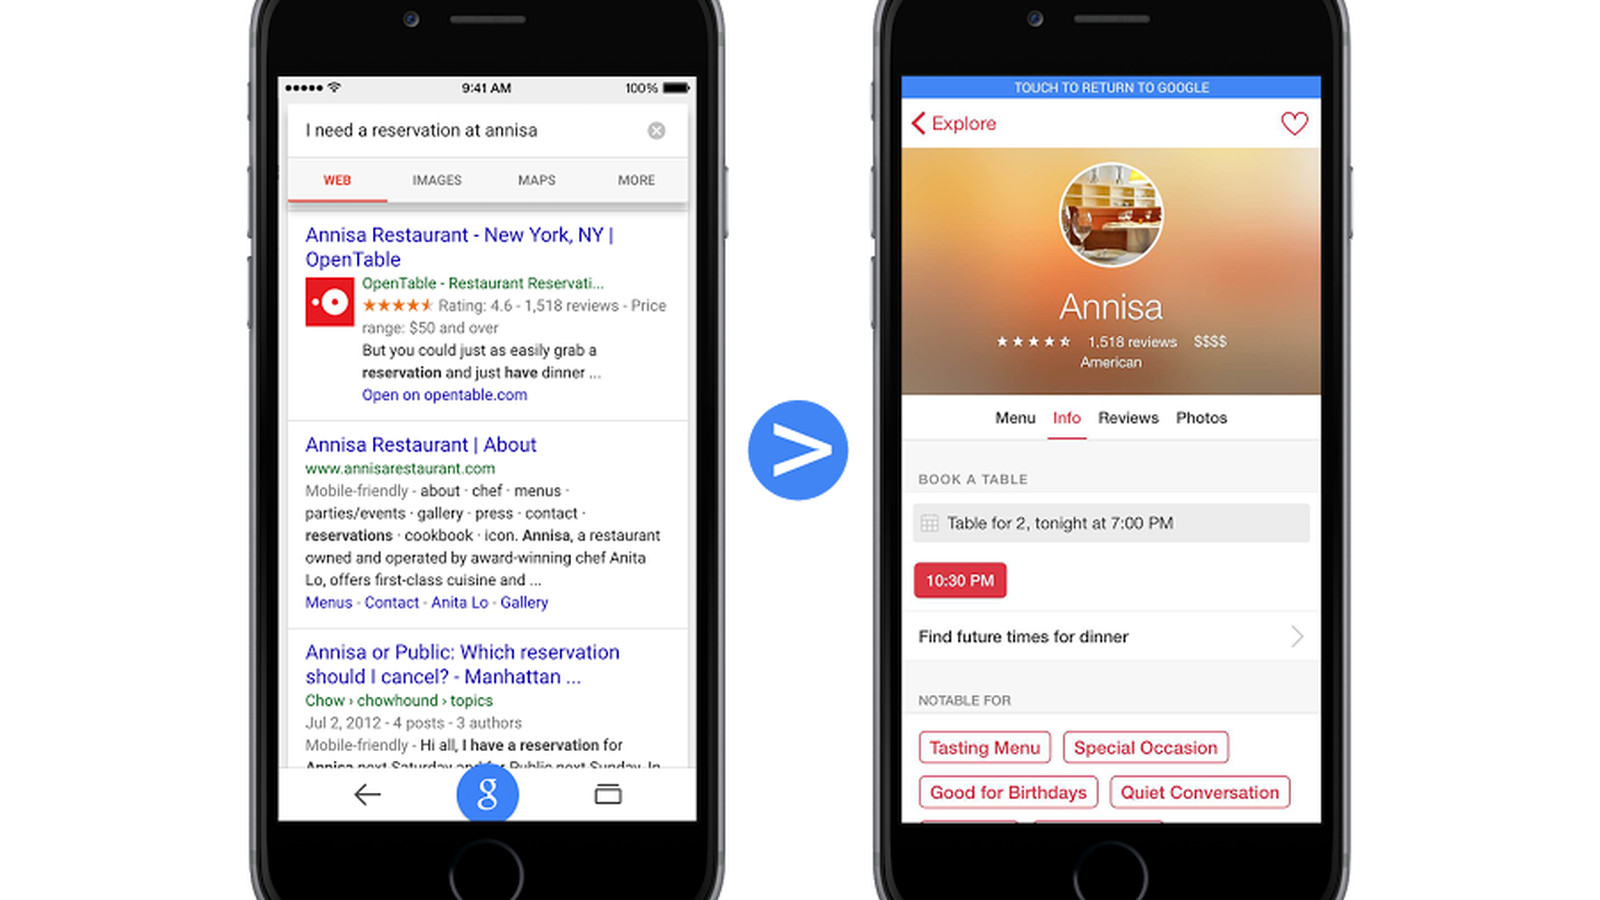 Enjoyable Google Will Soon Link Directly To Ios Apps In Mobile Search Interior Design Ideas Clesiryabchikinfo